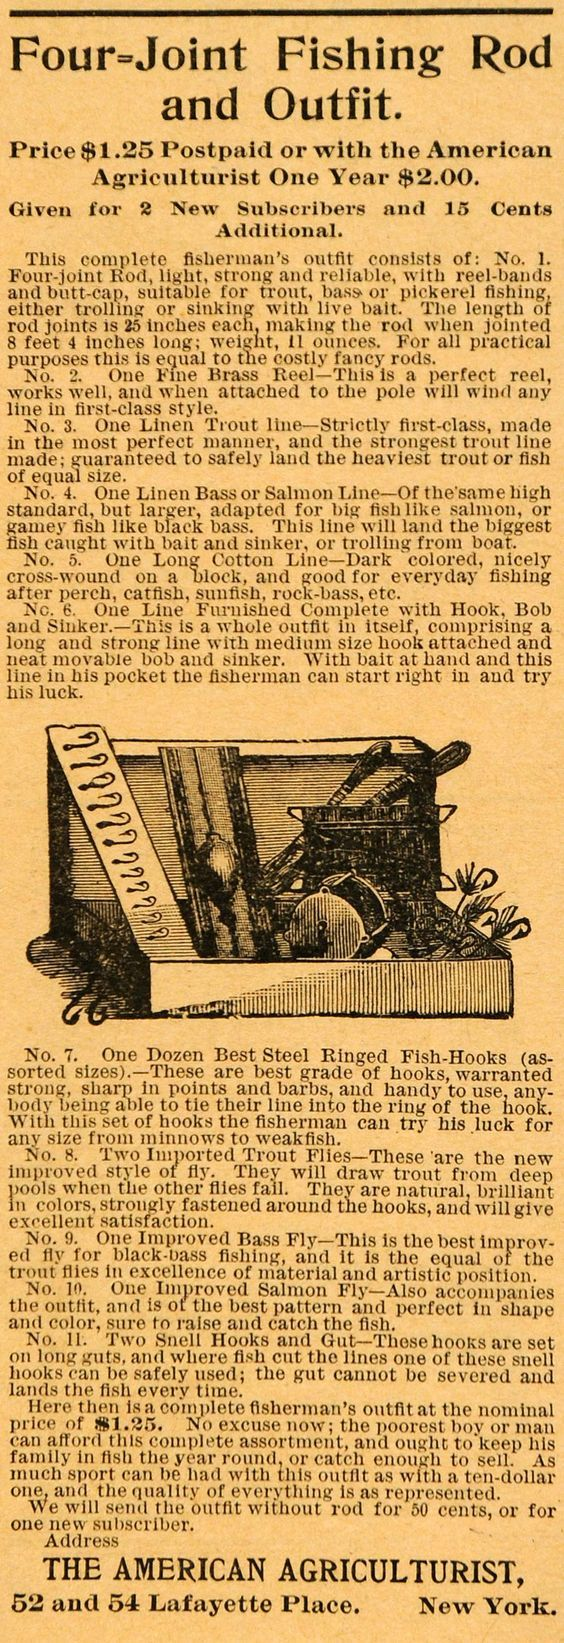 1893 black and white print ad for a subscription gift: a four-joint fishing rod and outfit from the American Agriculturist